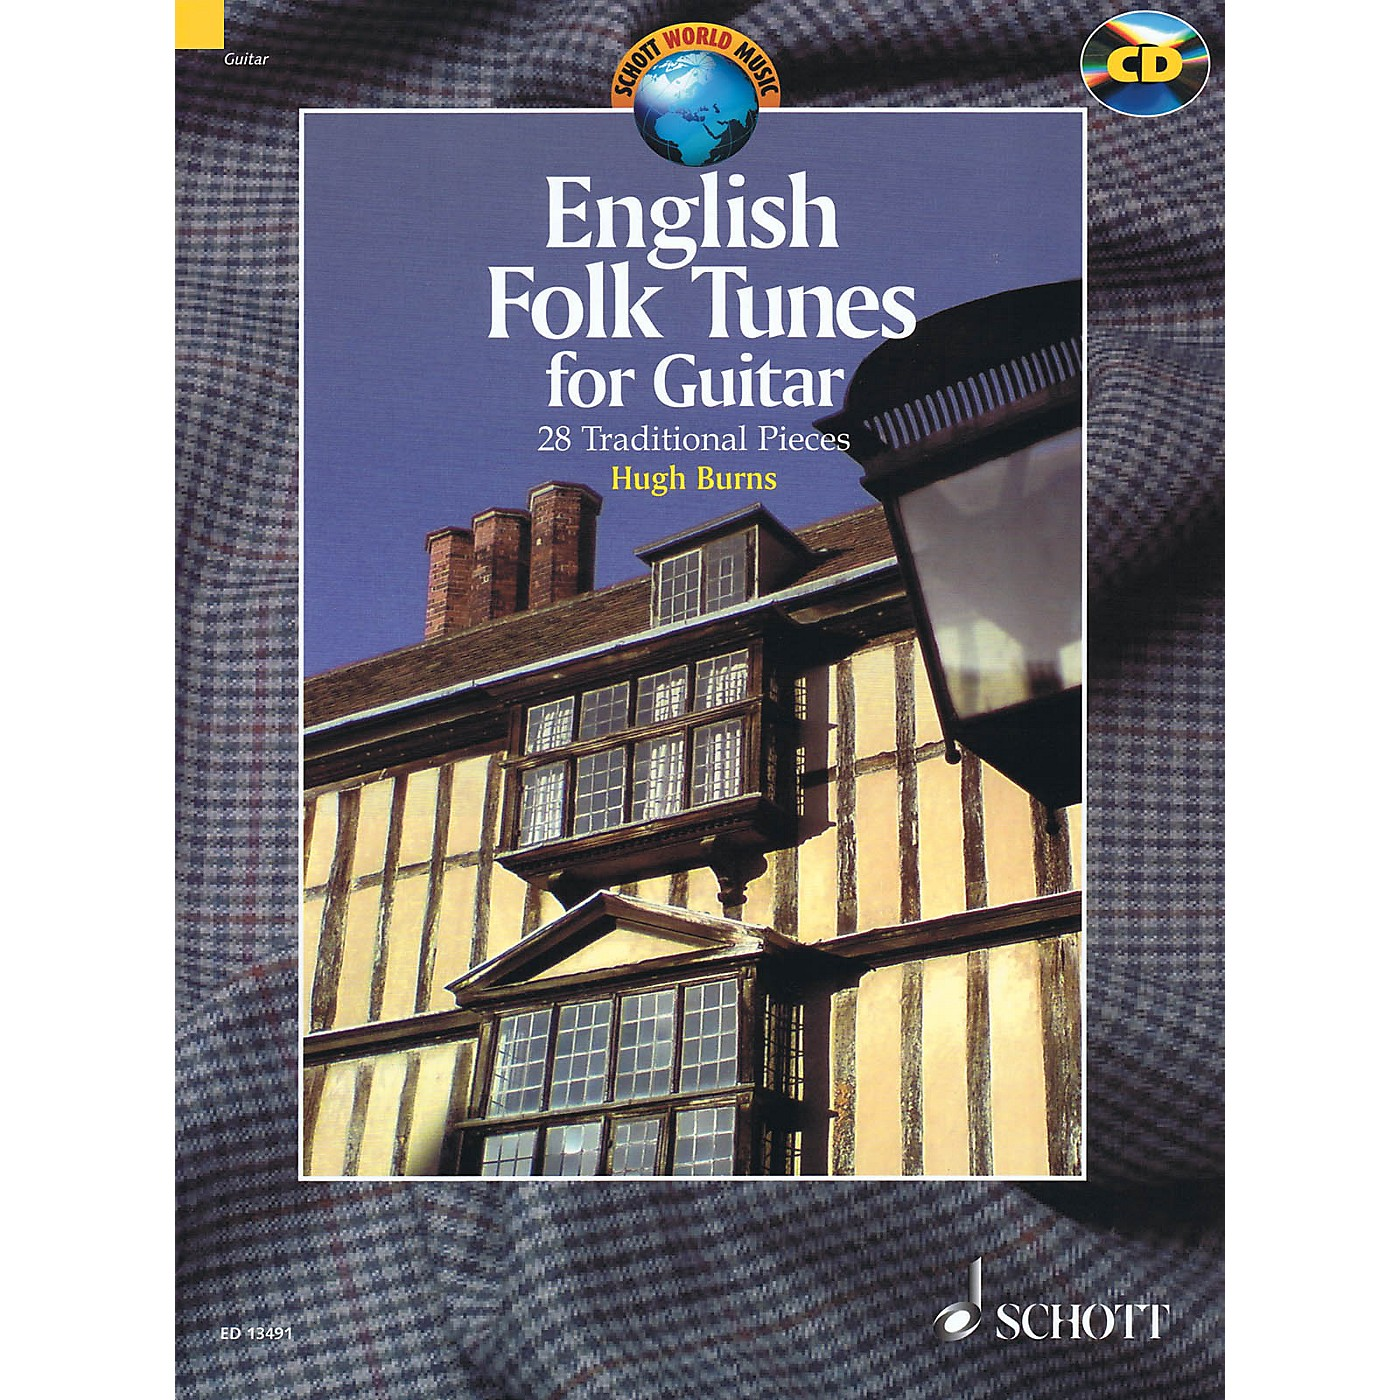 Schott English Folk Tunes for Guitar (28 Traditional Pieces) Guitar Series Softcover with CD thumbnail